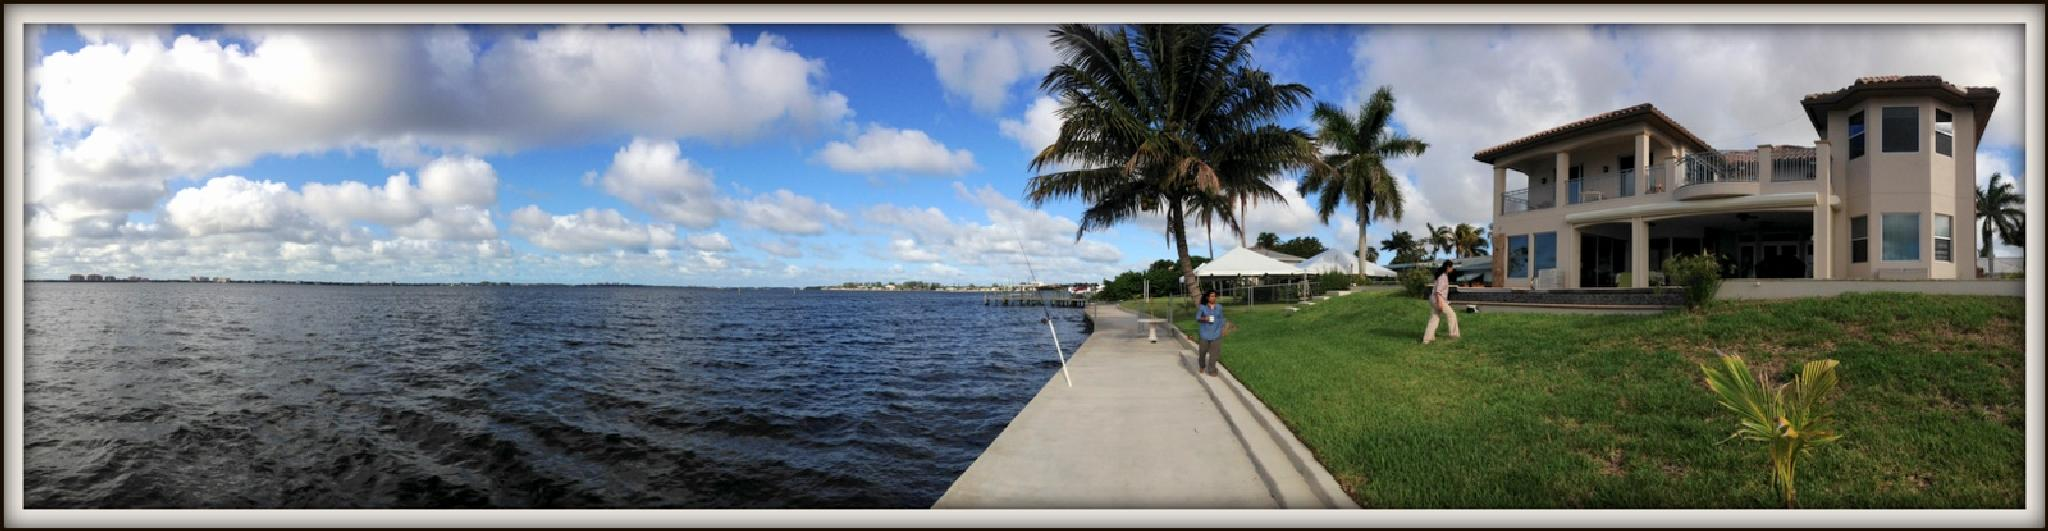 Cape Coral Florida by Mustafa.Arshad.Taru's Photography